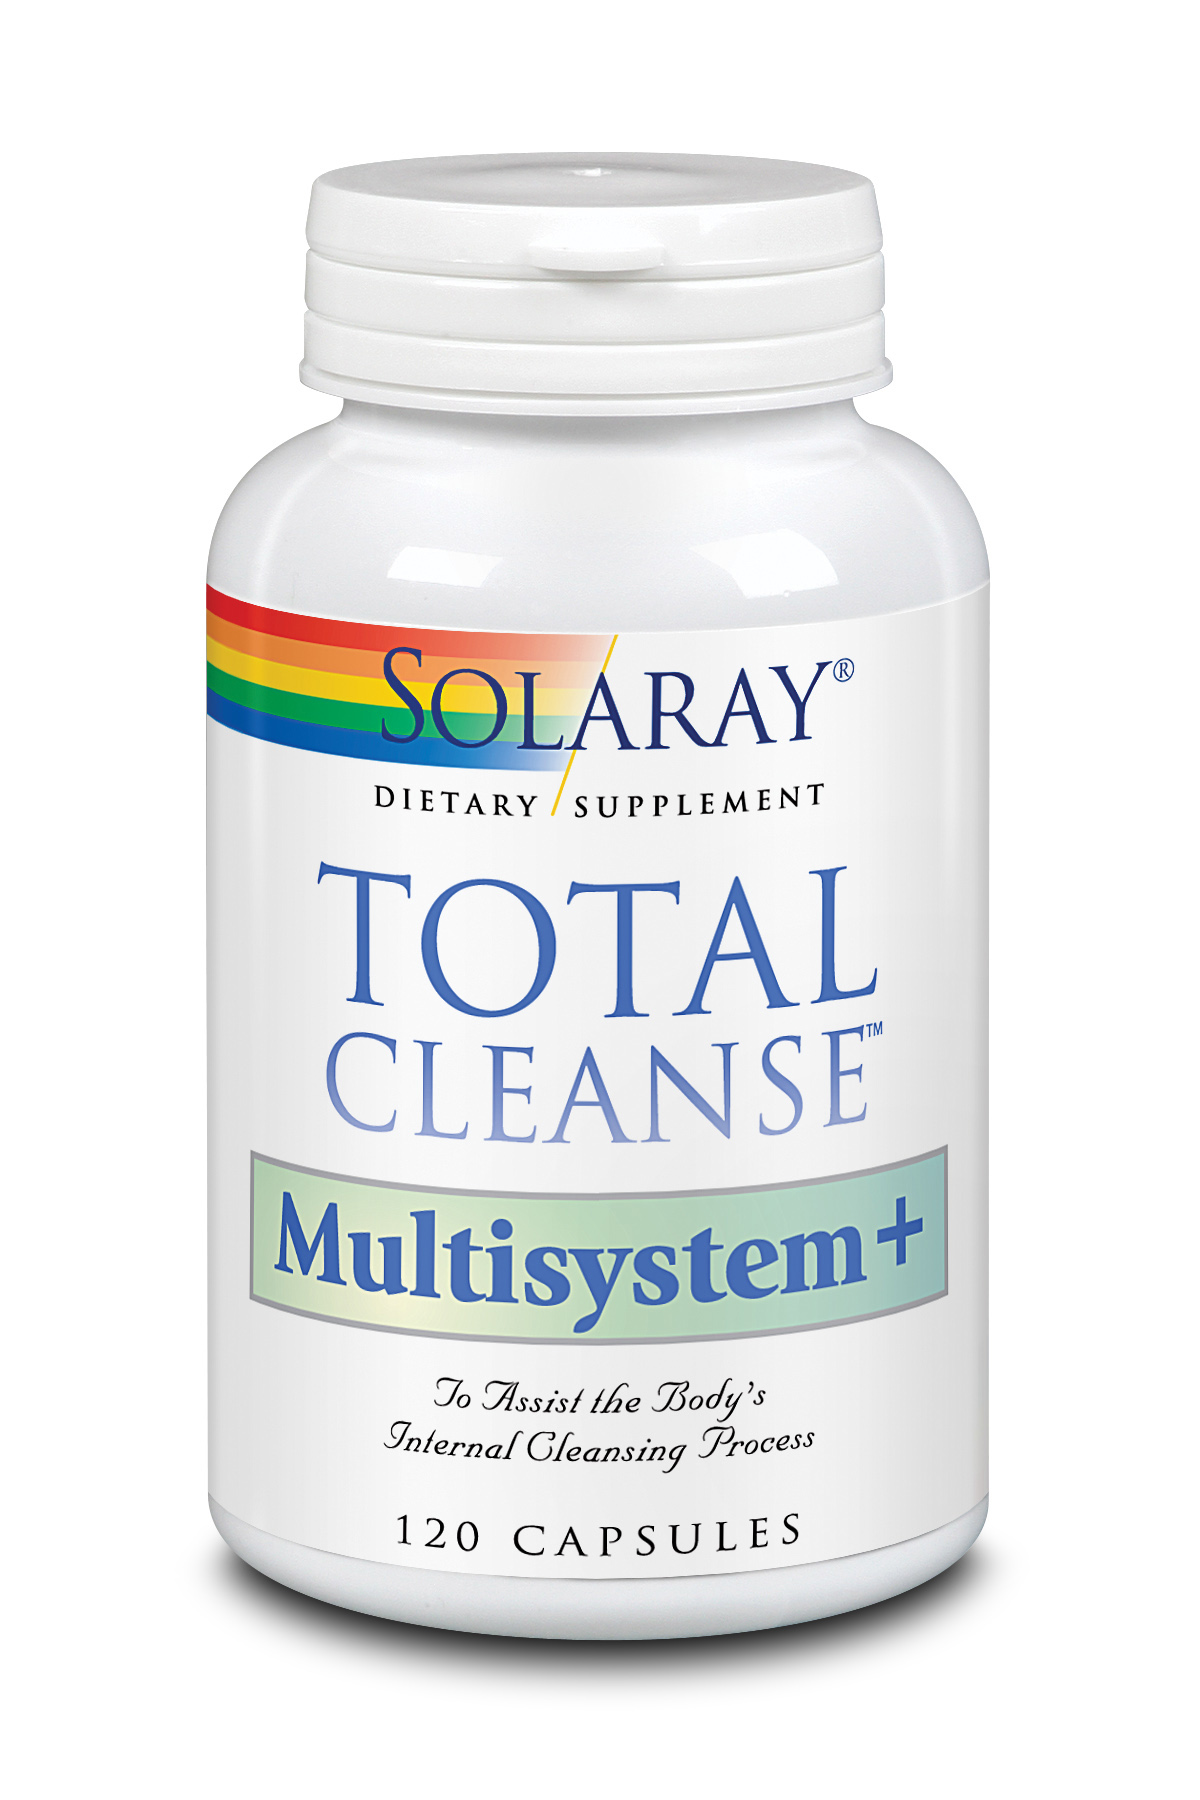 Total Cleanse Multisystem 120 Caps